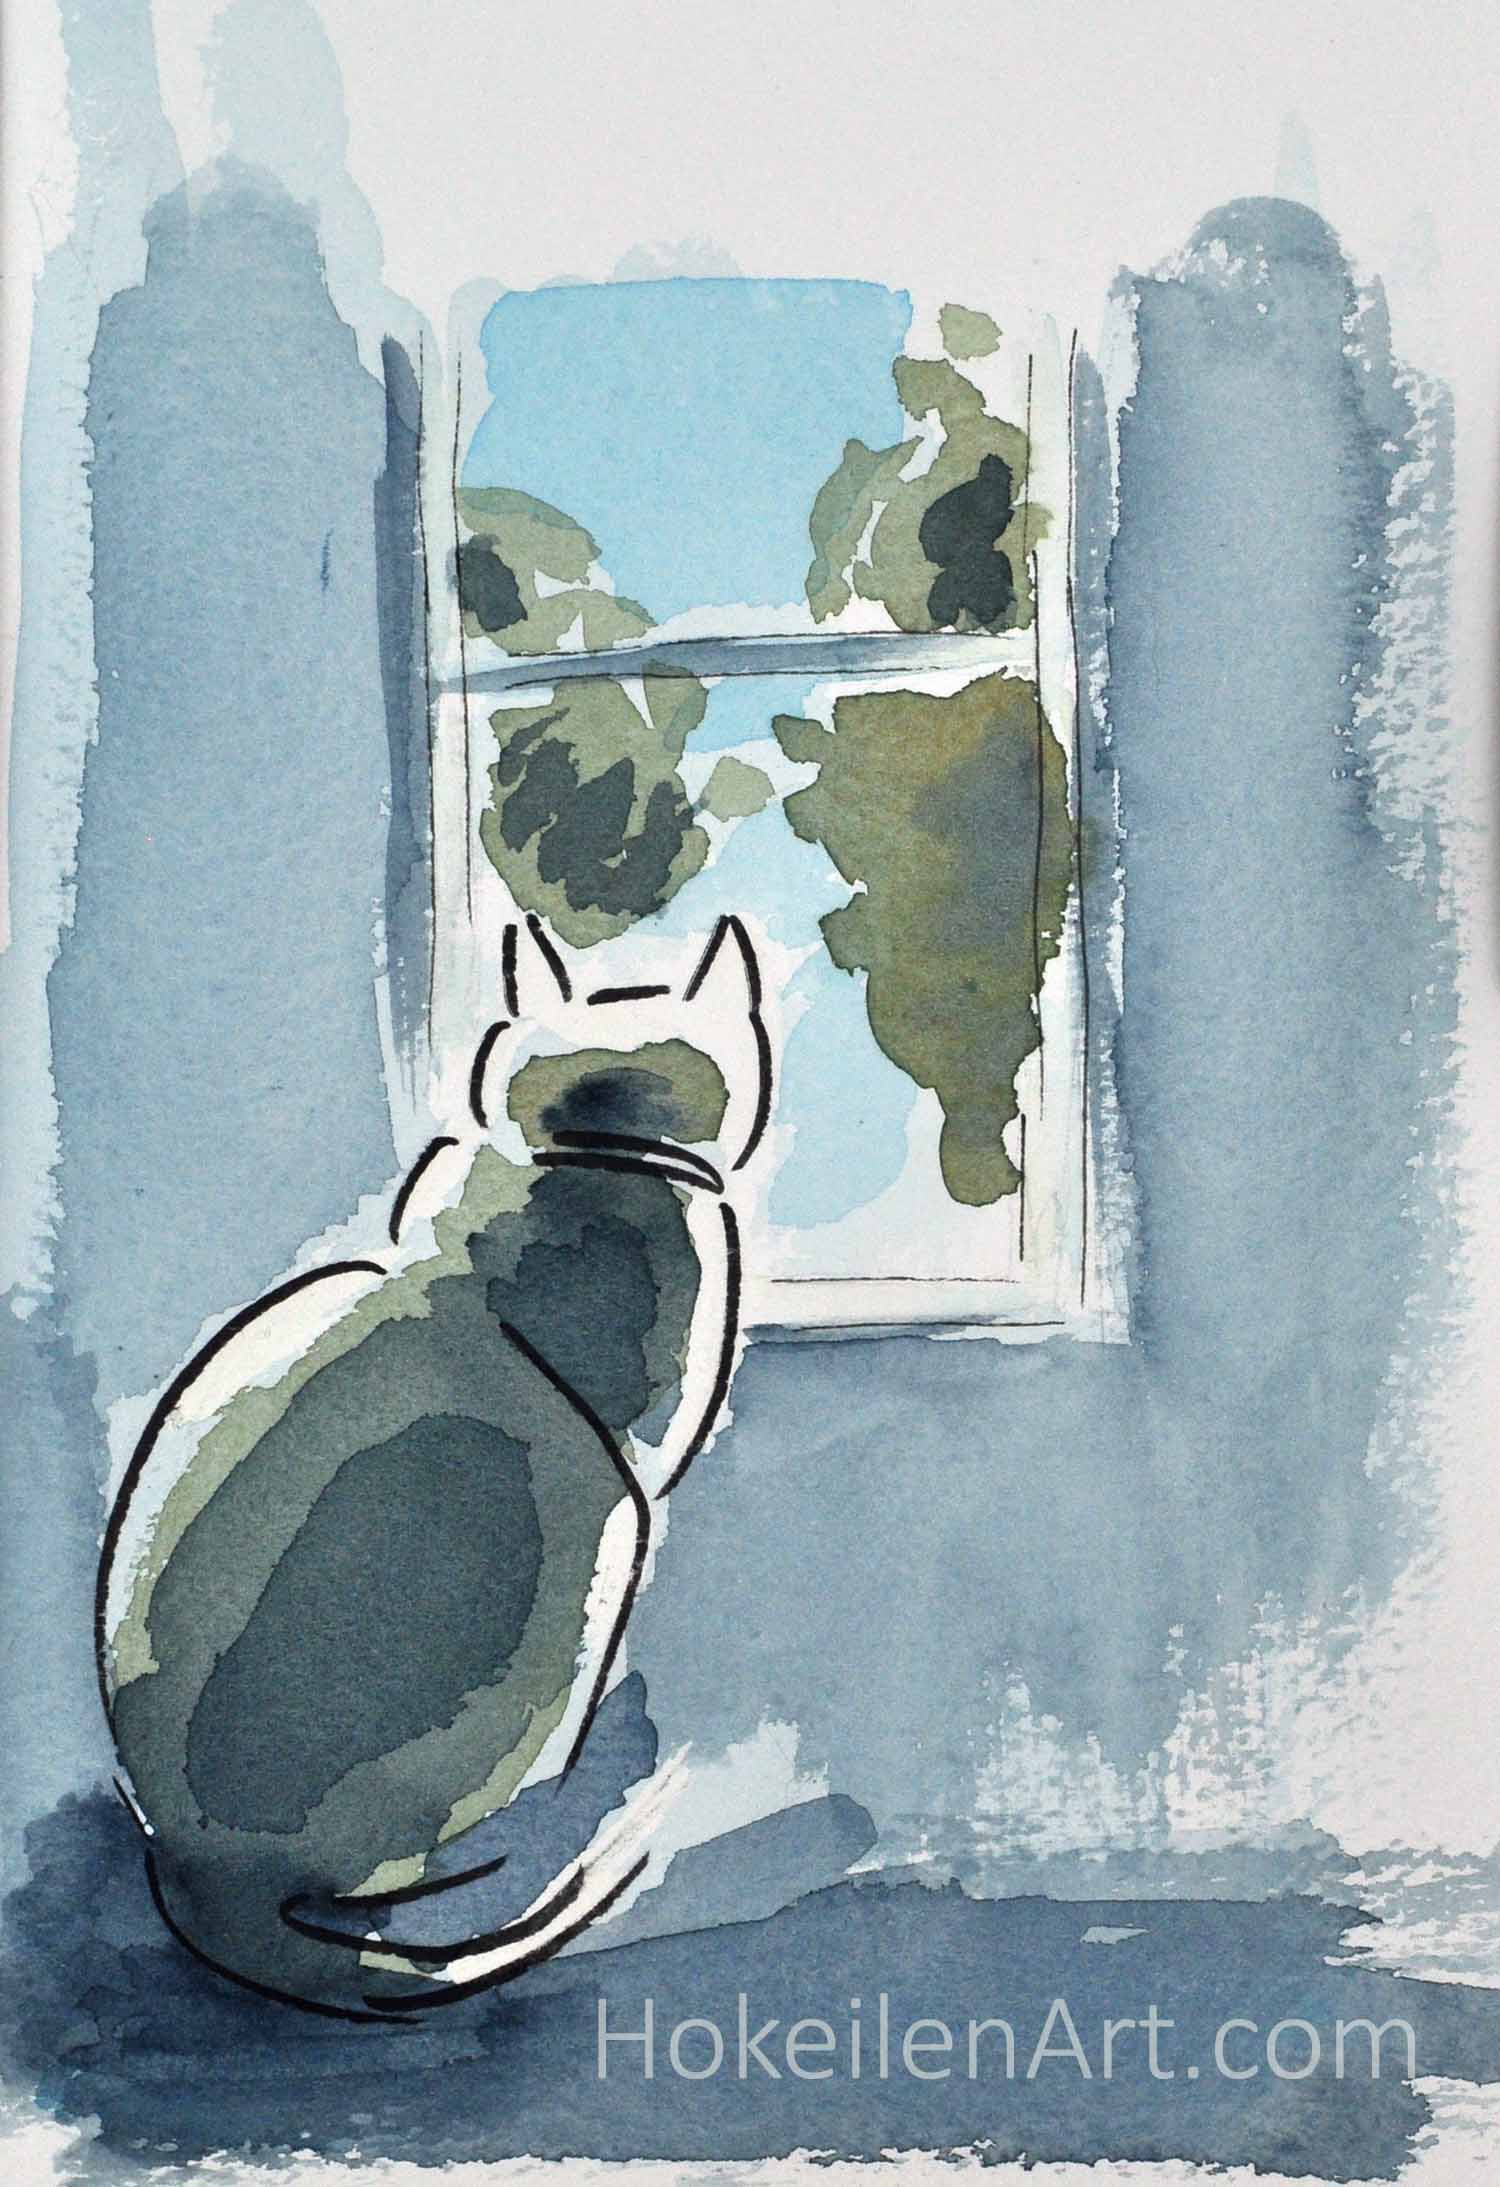 Watching the Neighbors - watercolor on paper, framed to 8